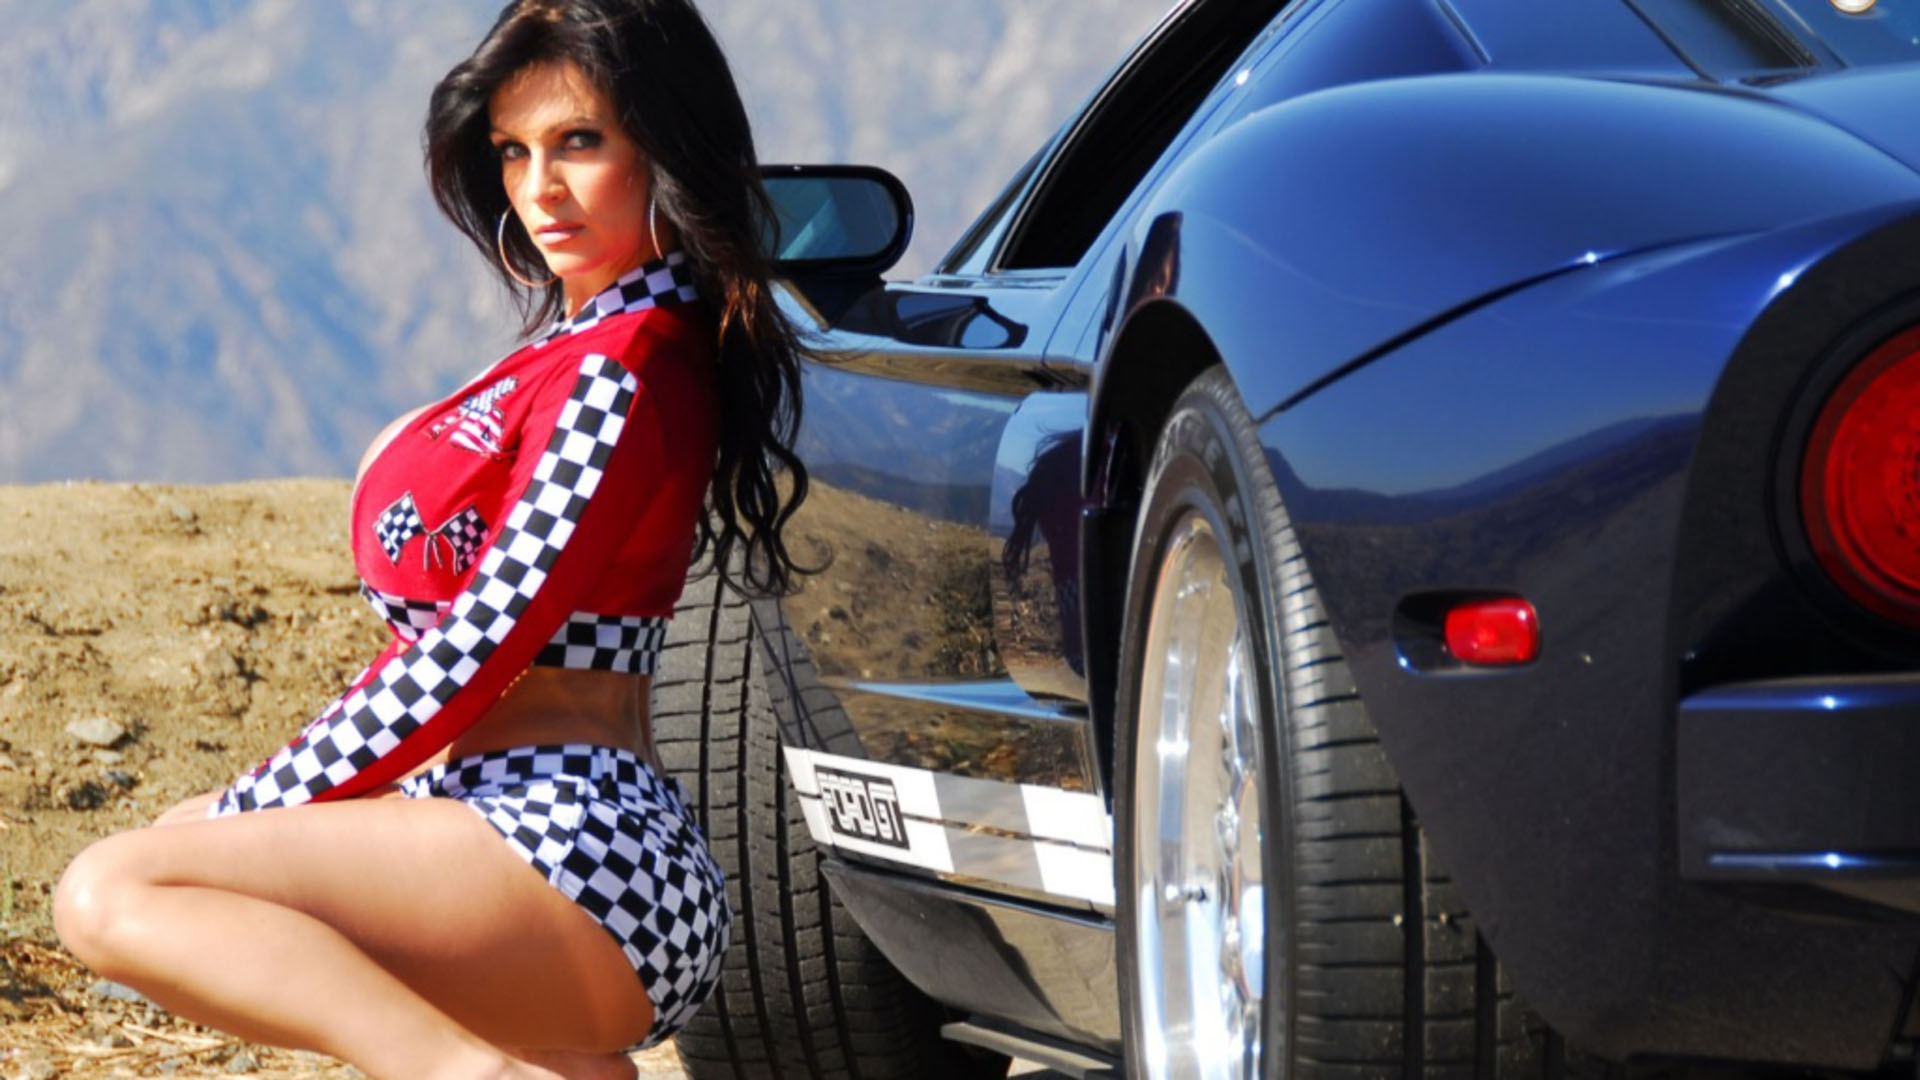 Rich Young Sexy Girl Driving Car Stock Photo